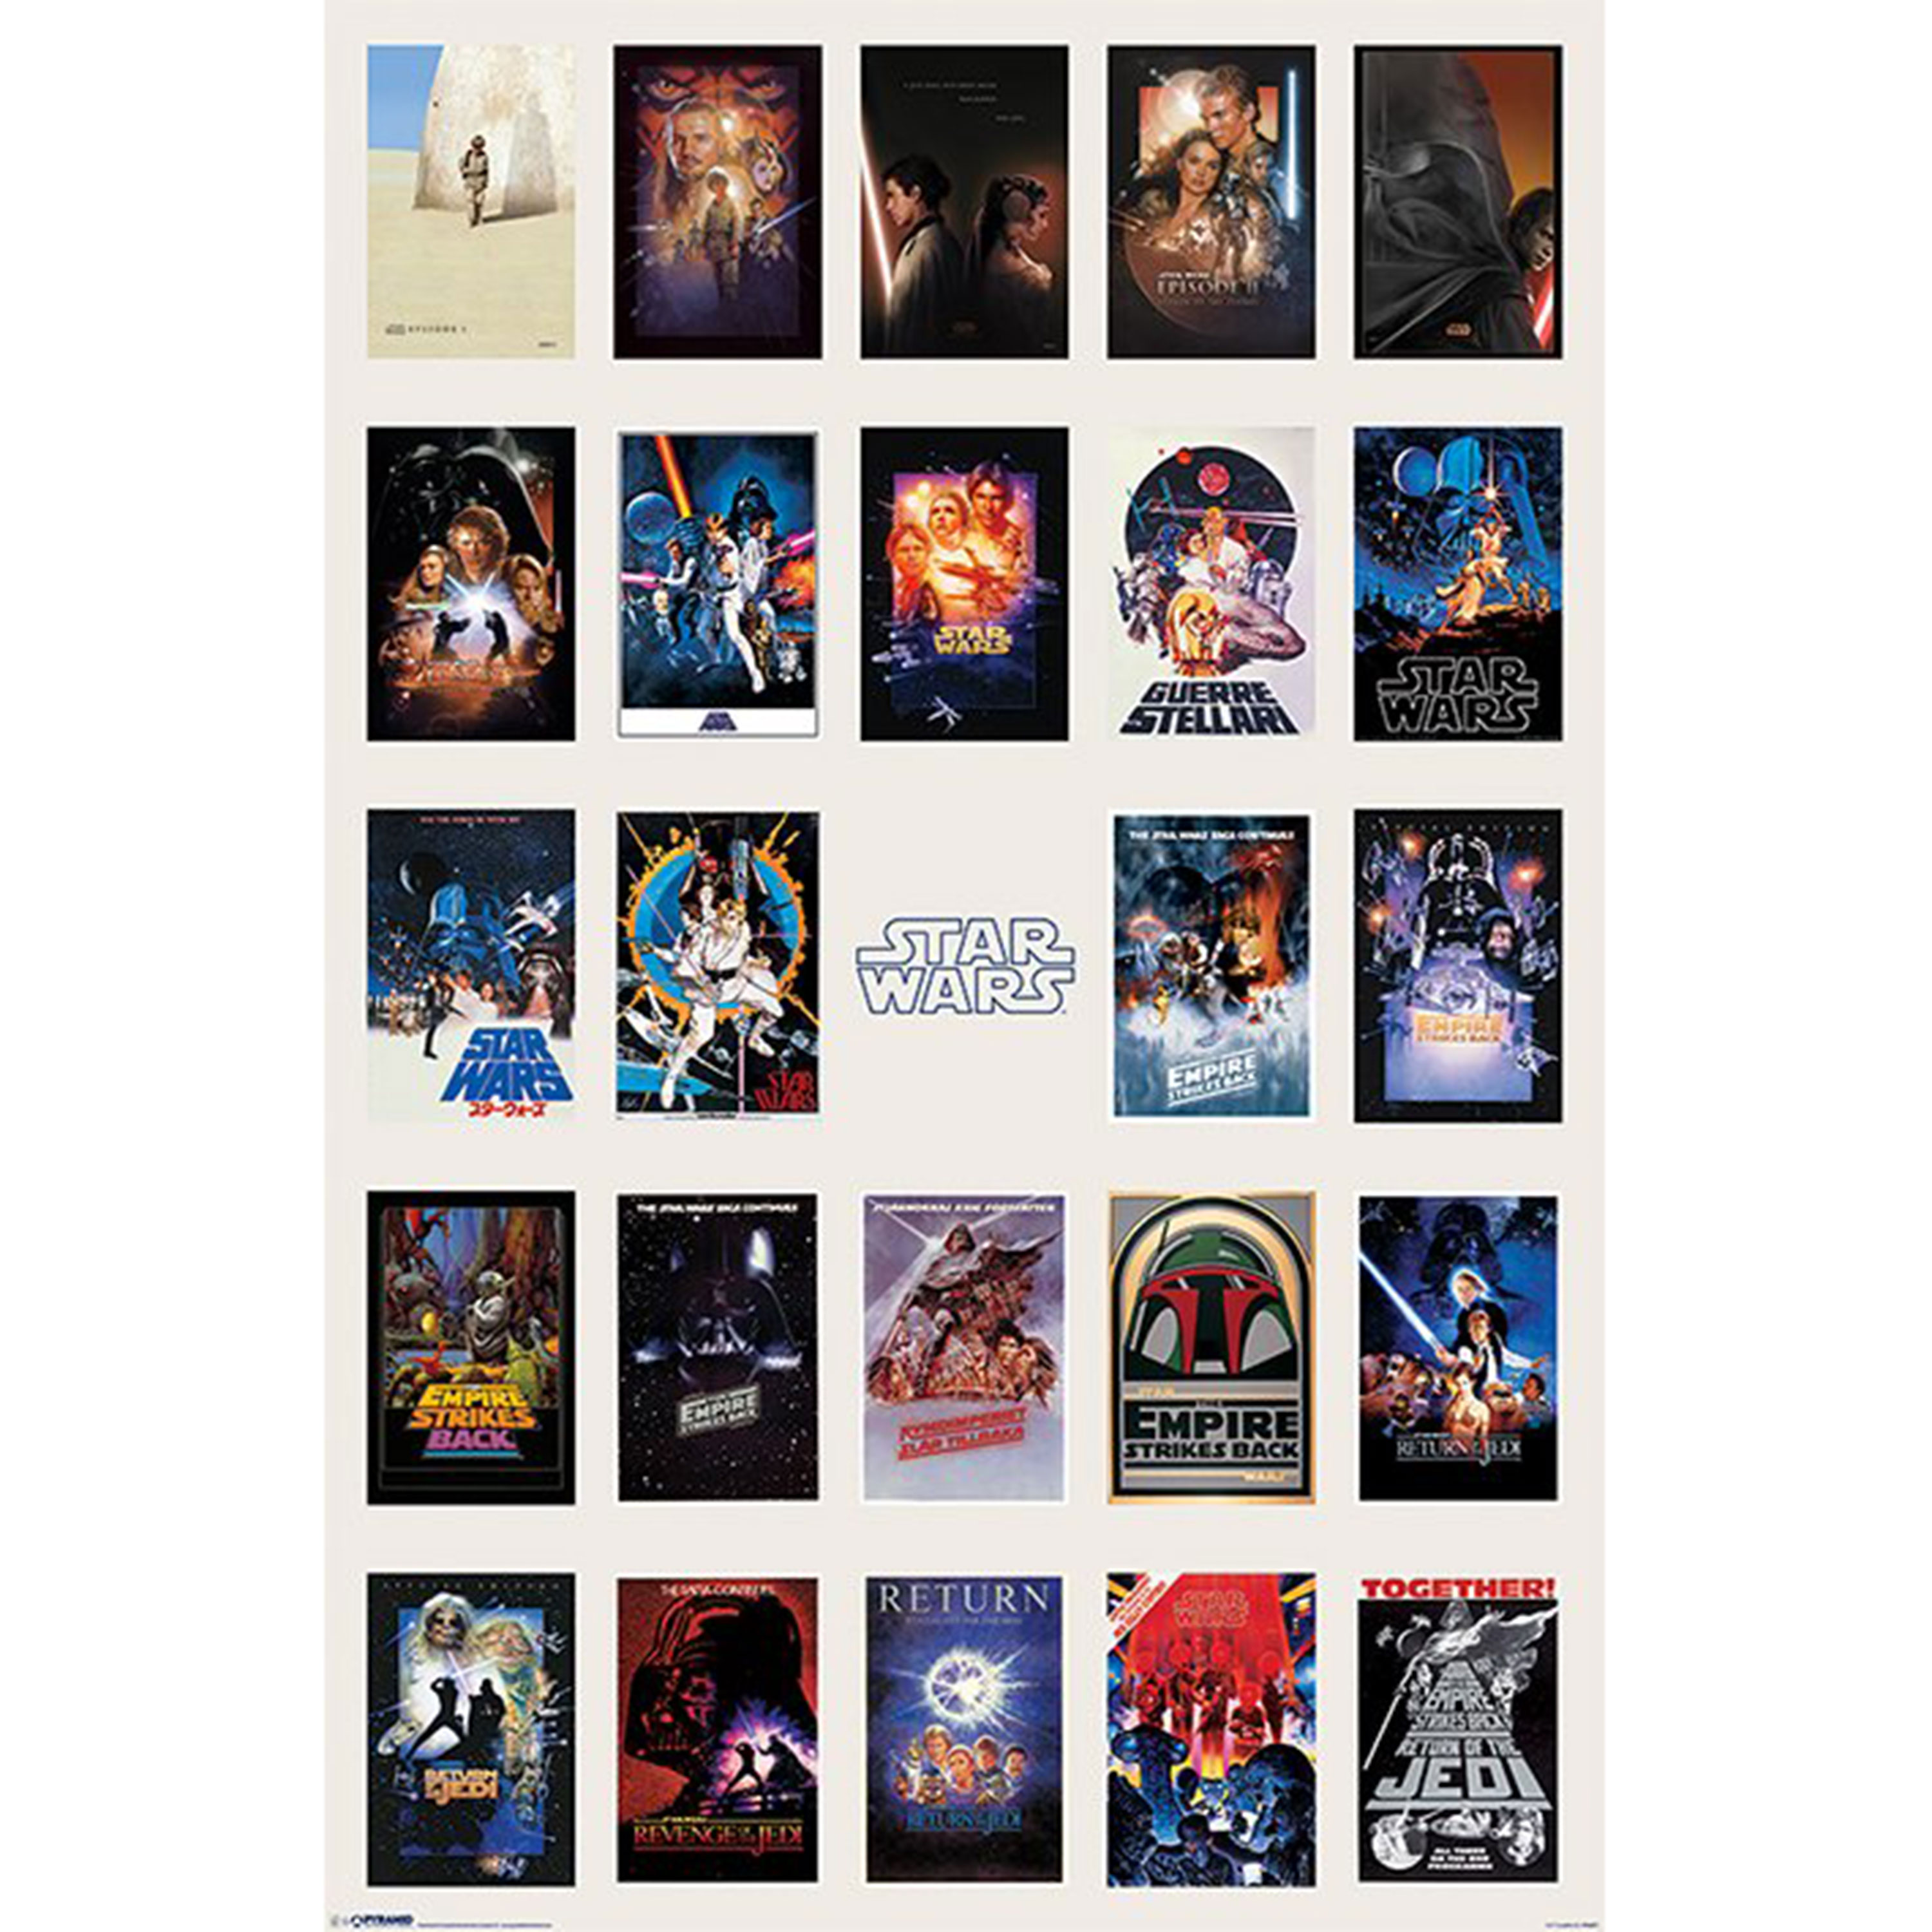 Star Wars Movie Poster Collage Maxi Poster